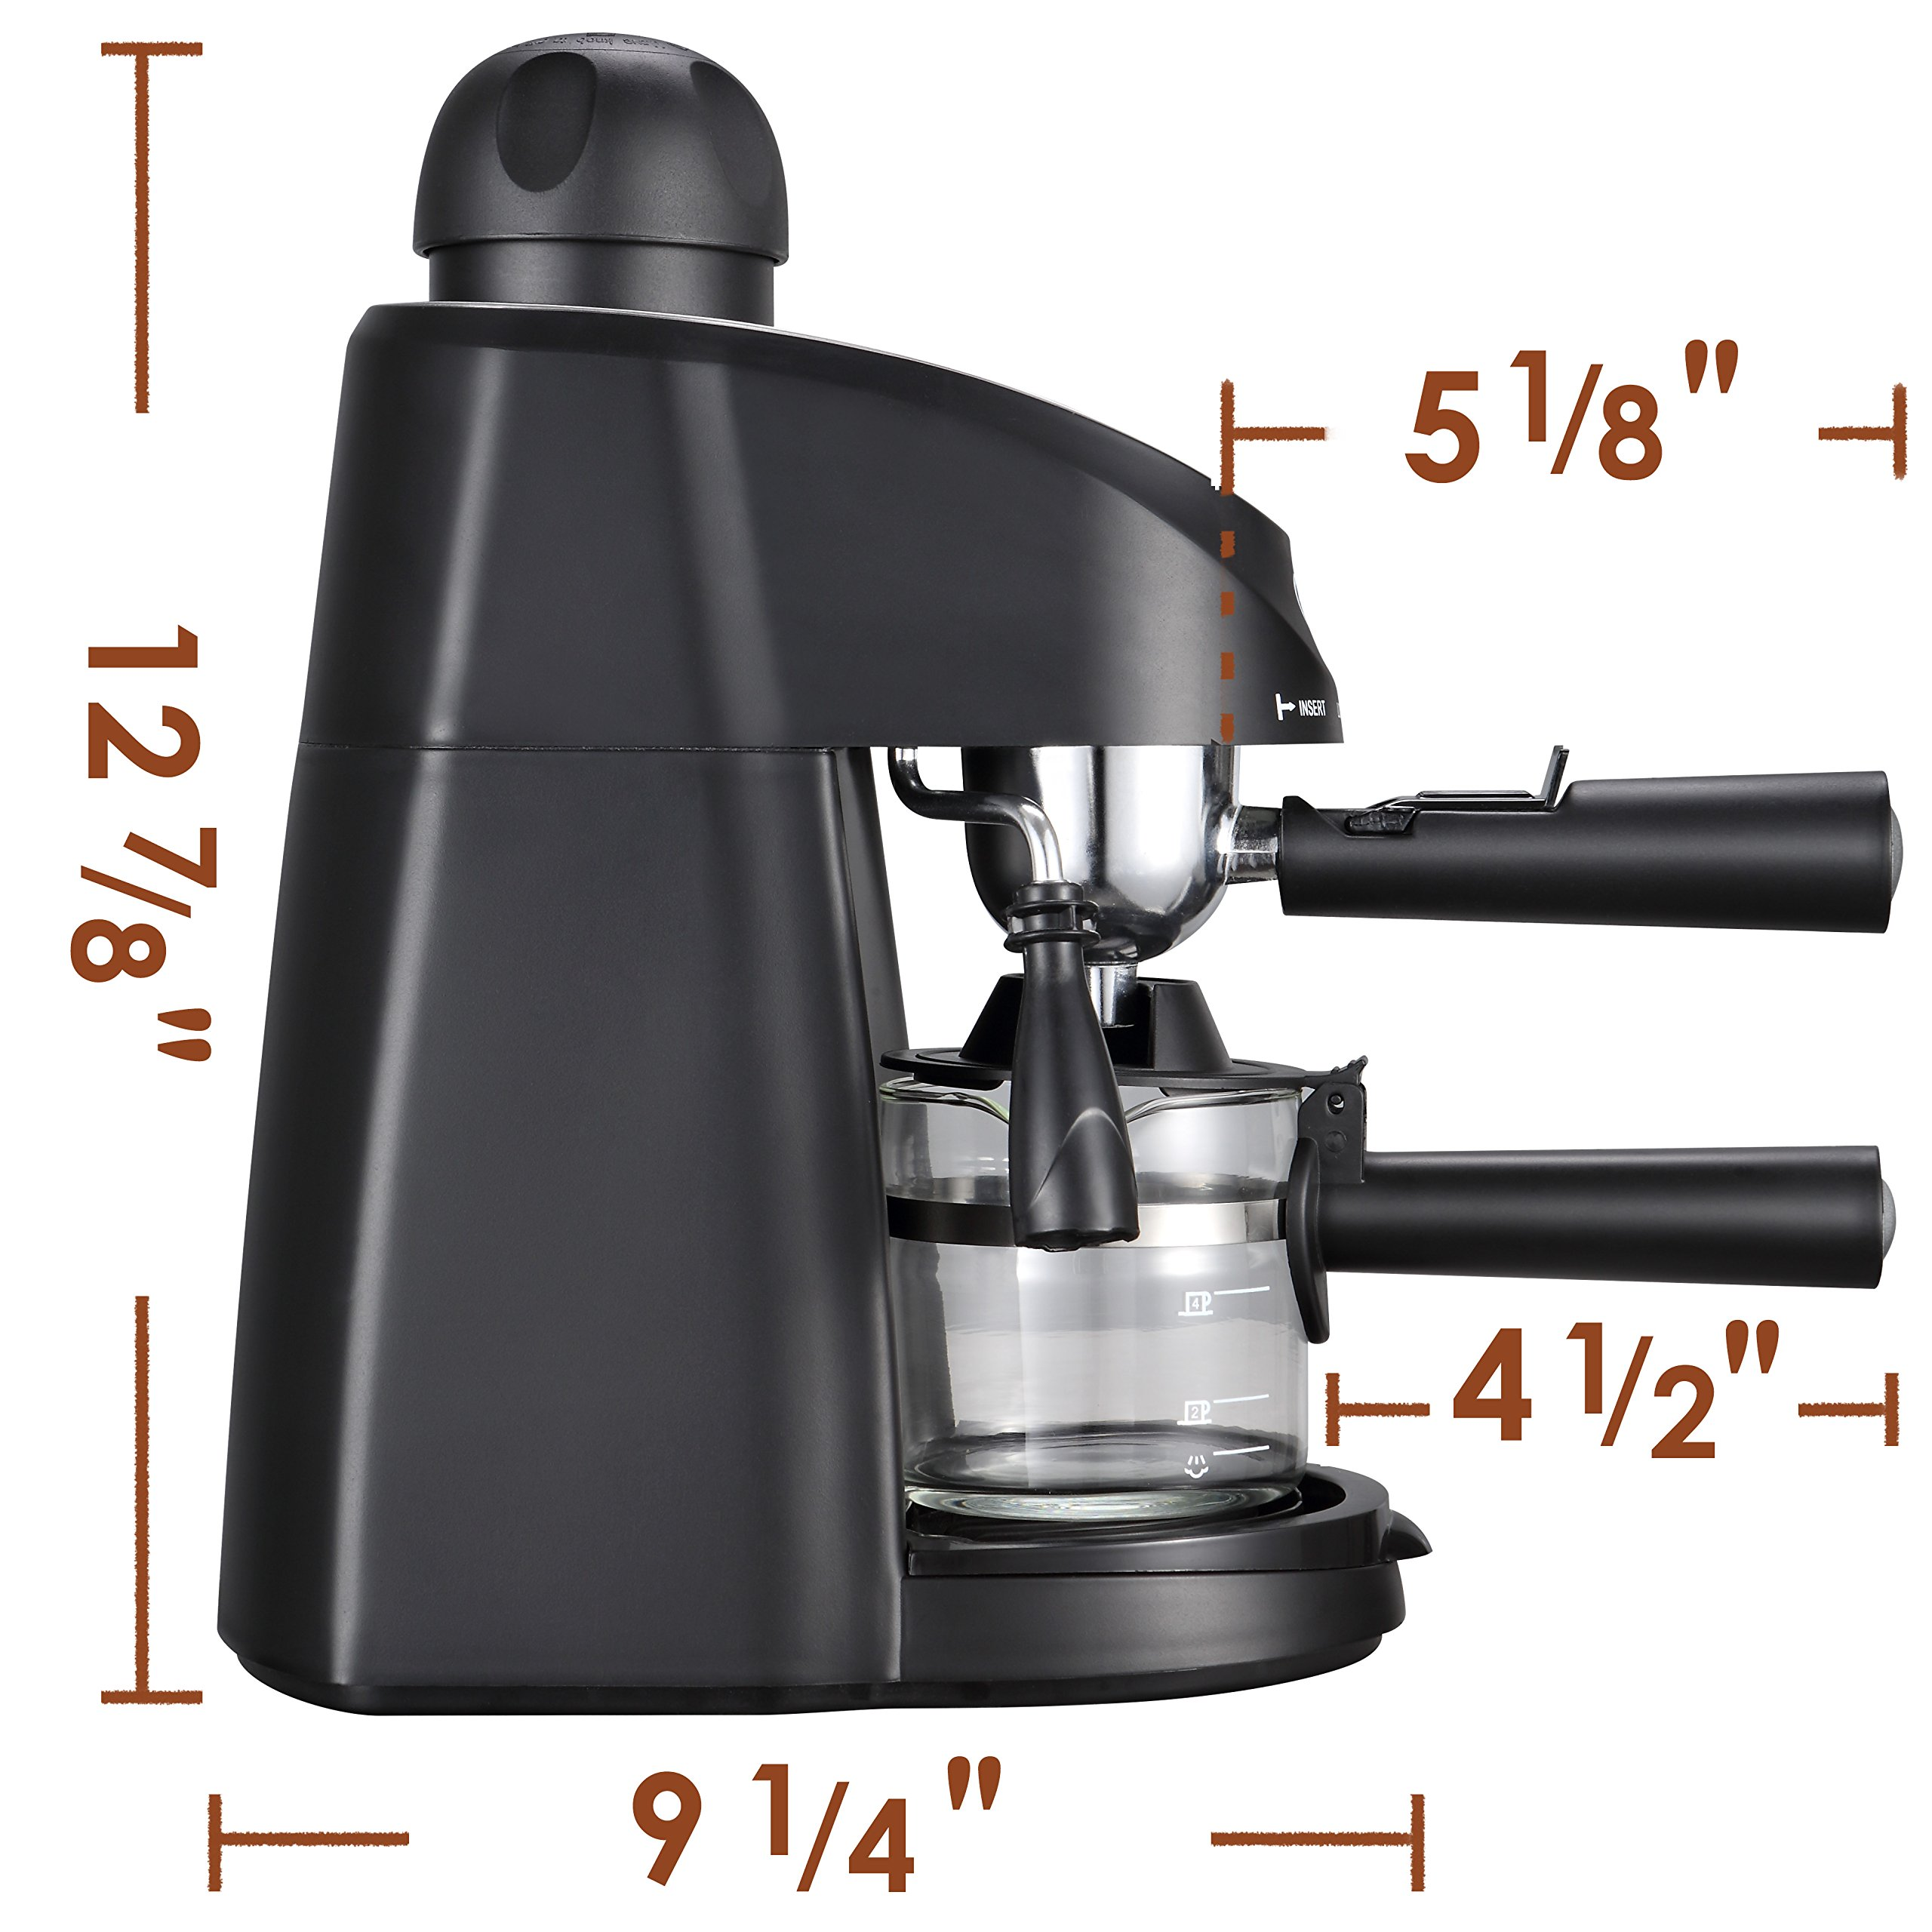 Miho CM-01A Espresso Machine 3.5 Bar Steam Cappuccino and Latte Maker Compact Design Milk Frother 4 Cups Coffee Capacity Electric 800W by Miho (Image #4)